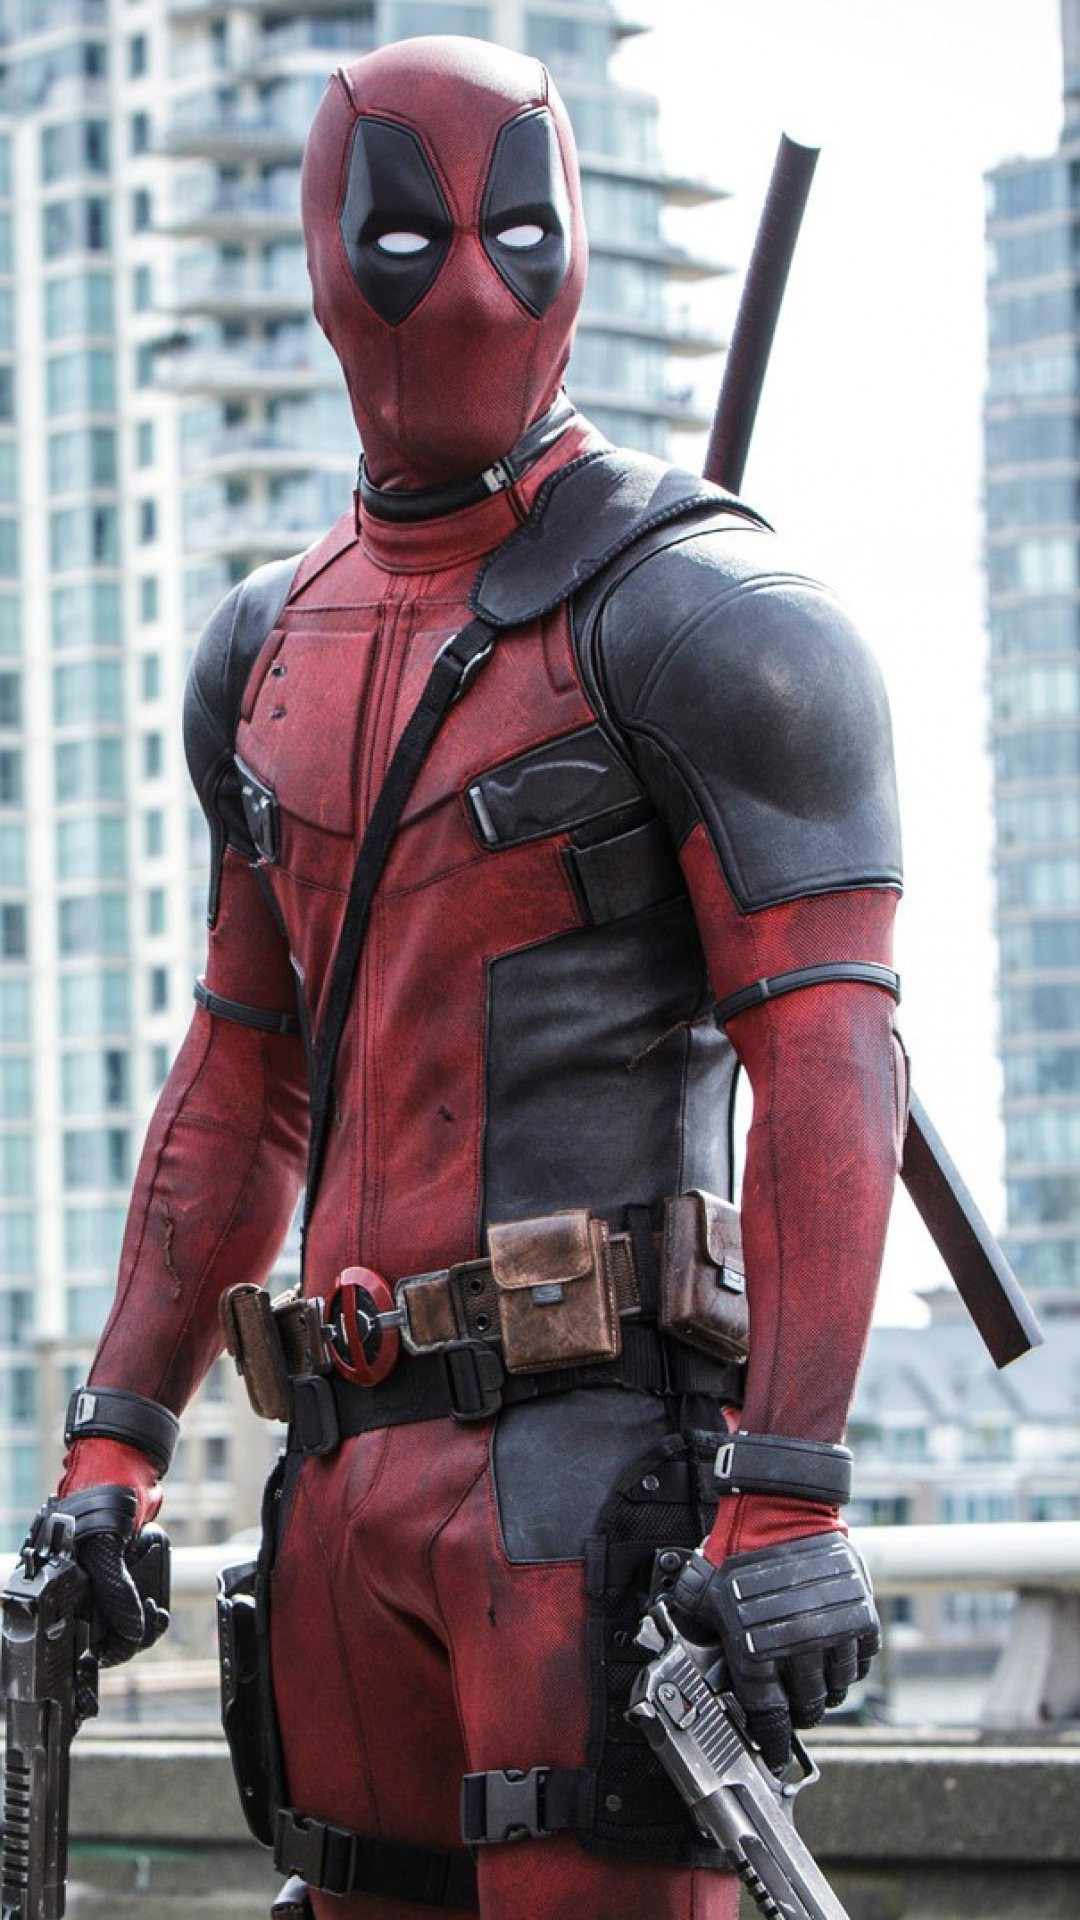 Deadpool Hd Wallpapers For Xiaomi Redmi Note 3 Wallpapers Pictures